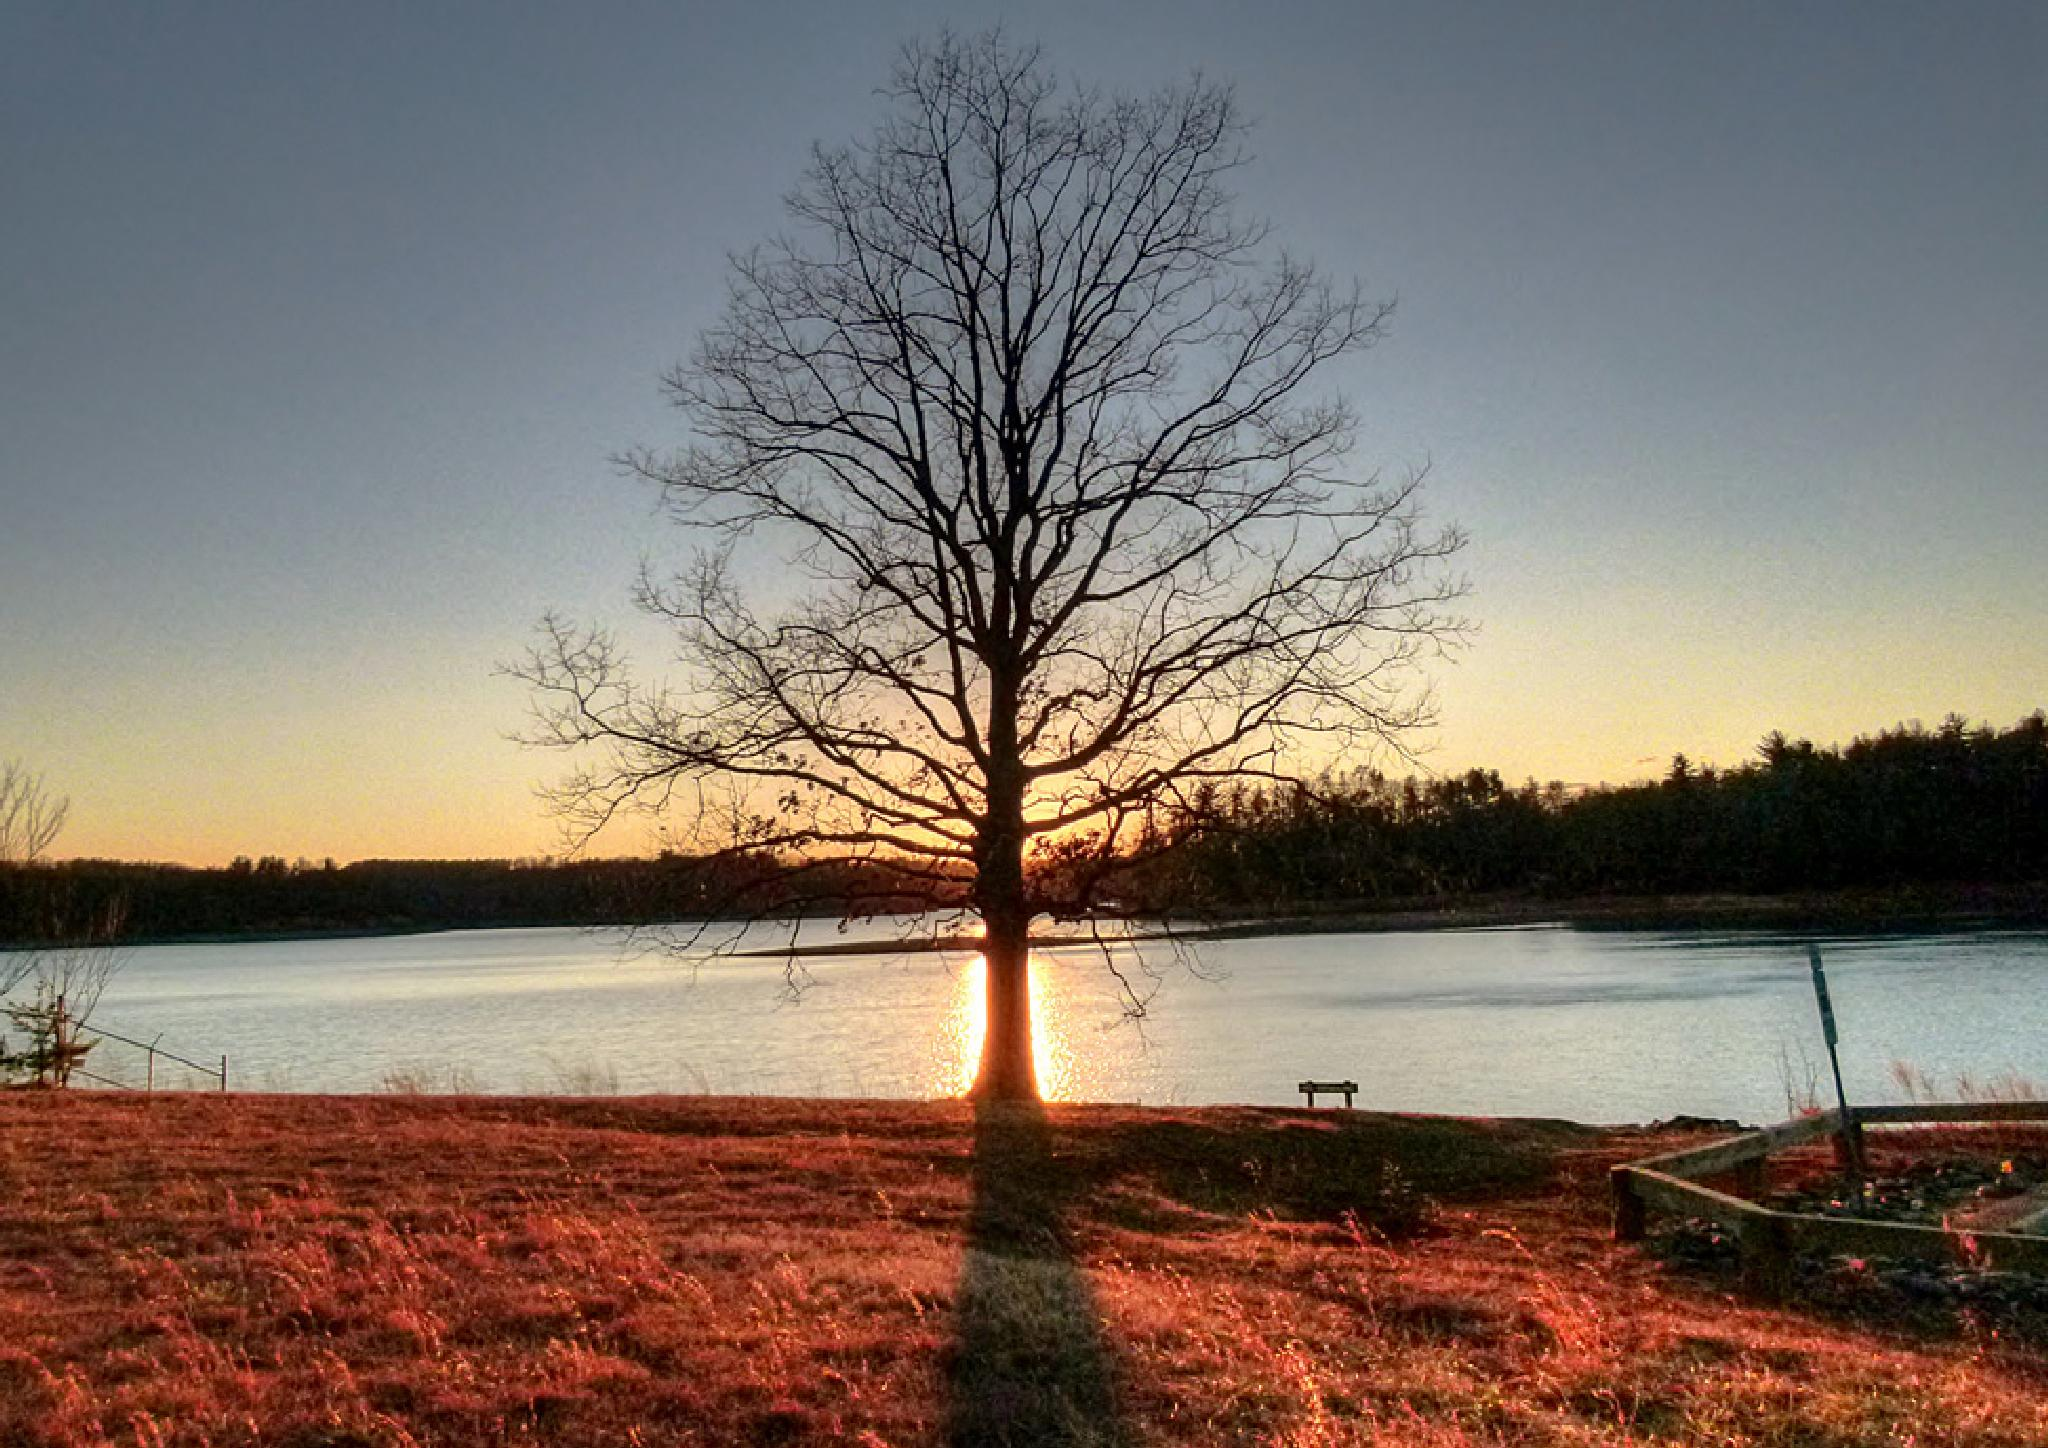 The Tree Sunset by john.hamrick.144